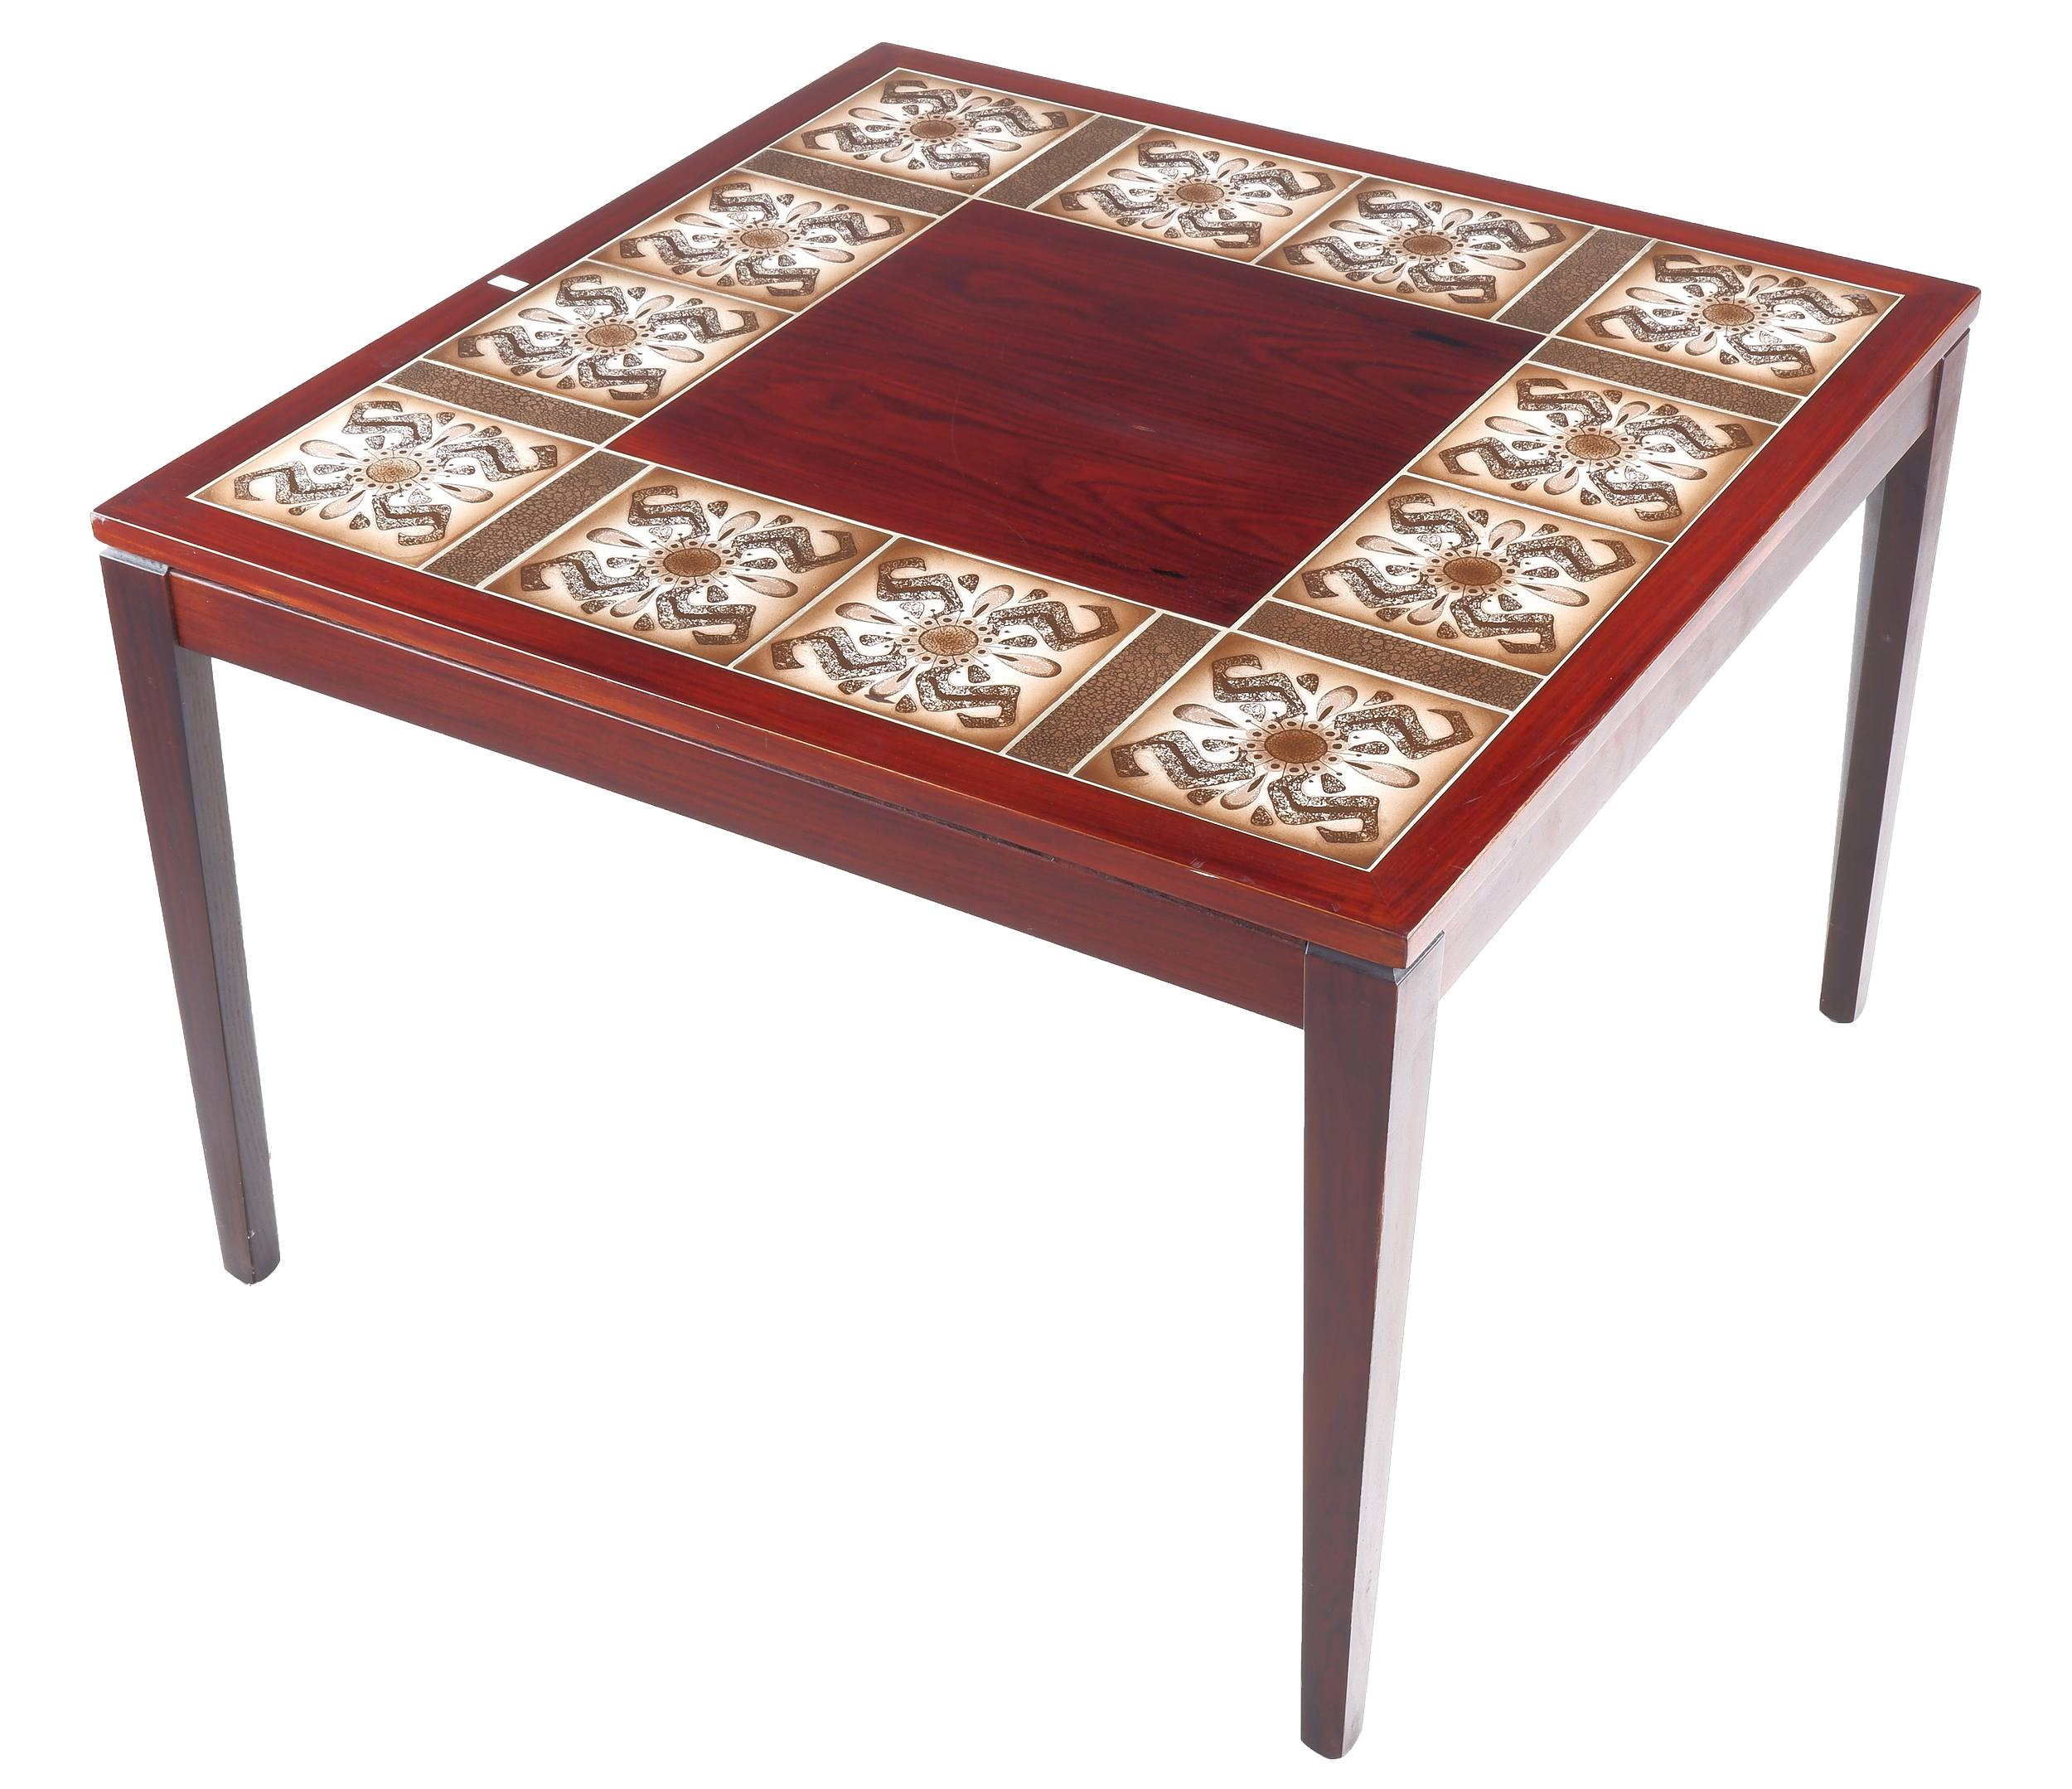 'Mid Century Danish Rosewood and Tile Coffee Table'